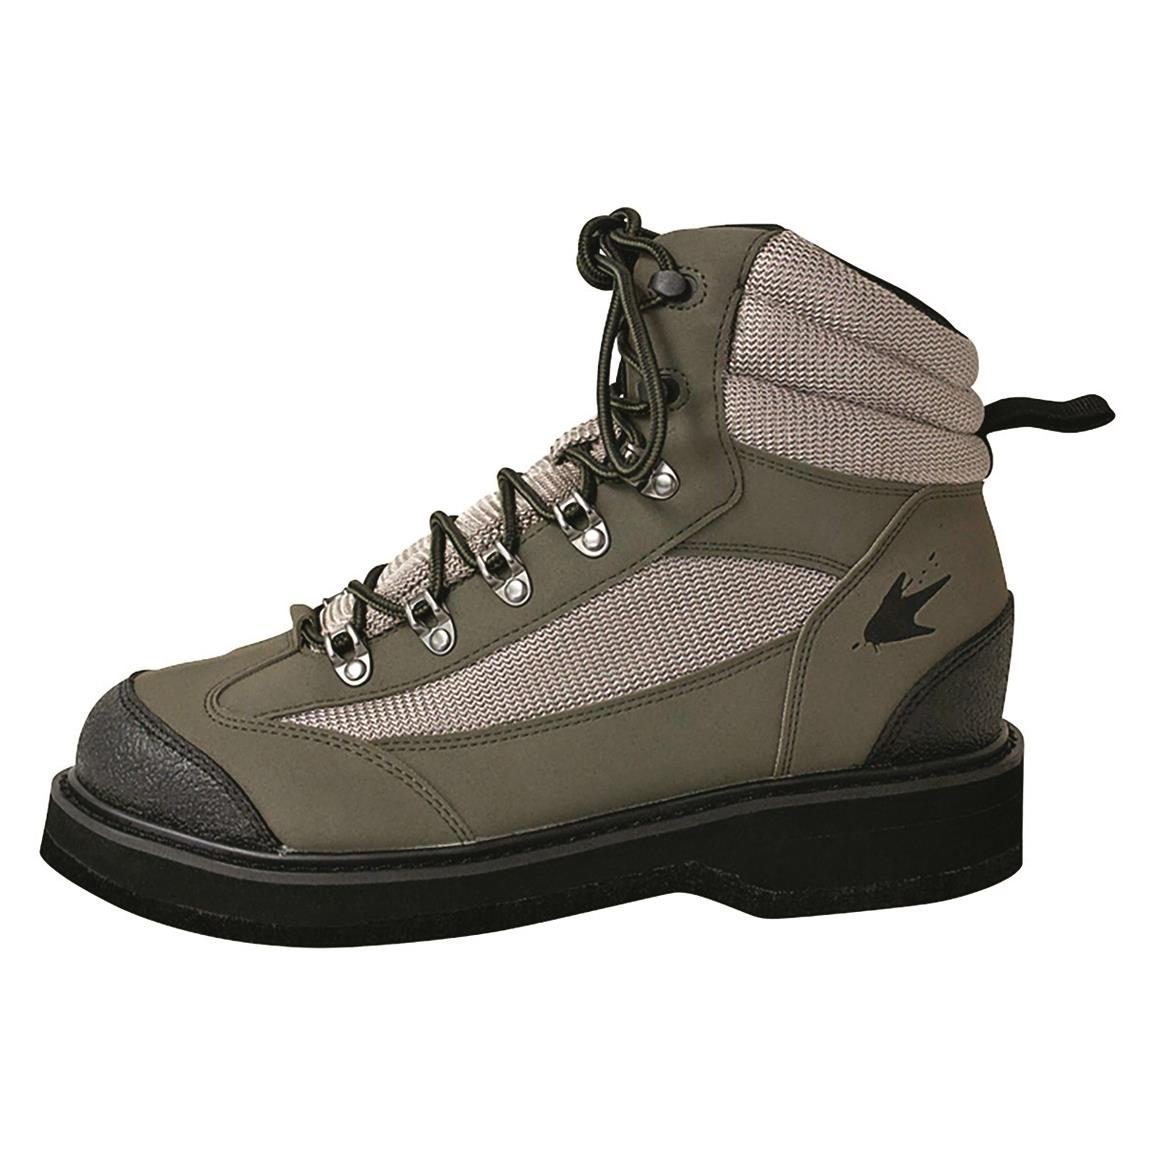 frogg toggs Hellbender Wading Boots, Rubber Sole, Cleated, Green/silver